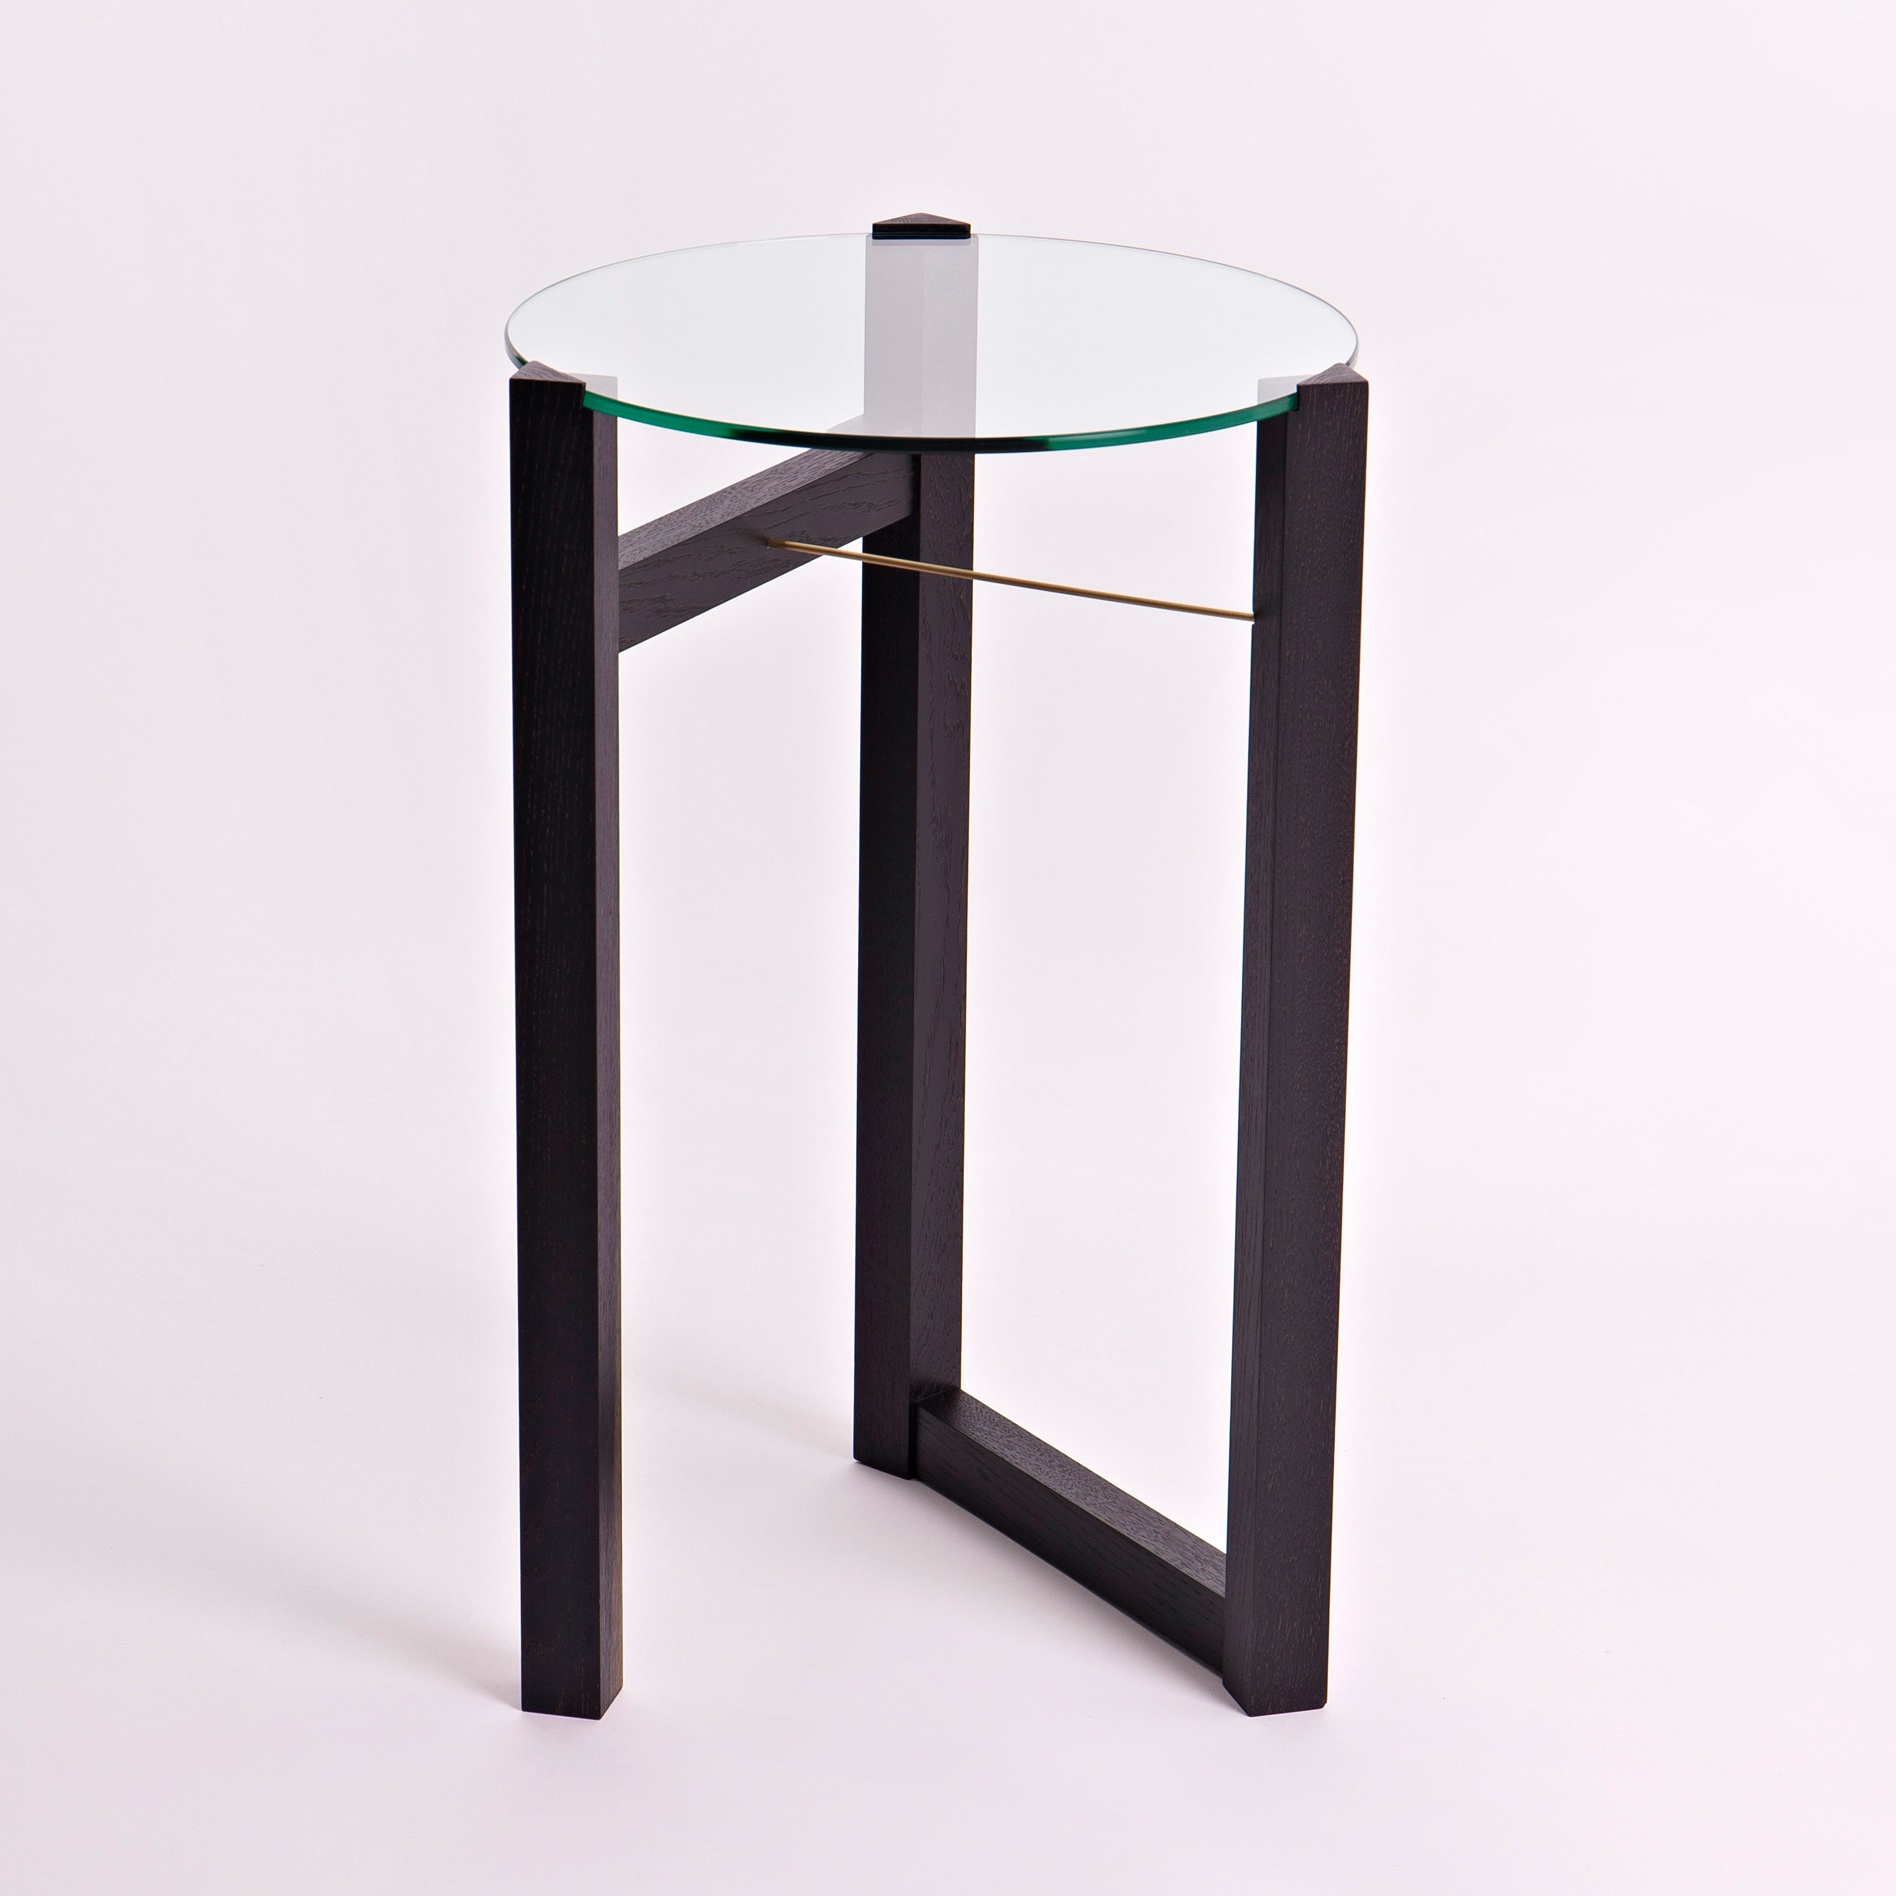 Materials - The table is handmade in beautiful ebonised European oak or wild Irish ash, with a solid brass rod to secure the glass to the top. The glass is toughened safety glass making it safe to handle.The sustainably sourced European oak is naturally ebonised using a vinegar and iron solution. The other option of wild Irish ash is sourced from Co. Wicklow. These trees are either windblown or have reached their end of life and need to be taken down. The table is finished with a hardwearing, natural, hand rubbed oil.